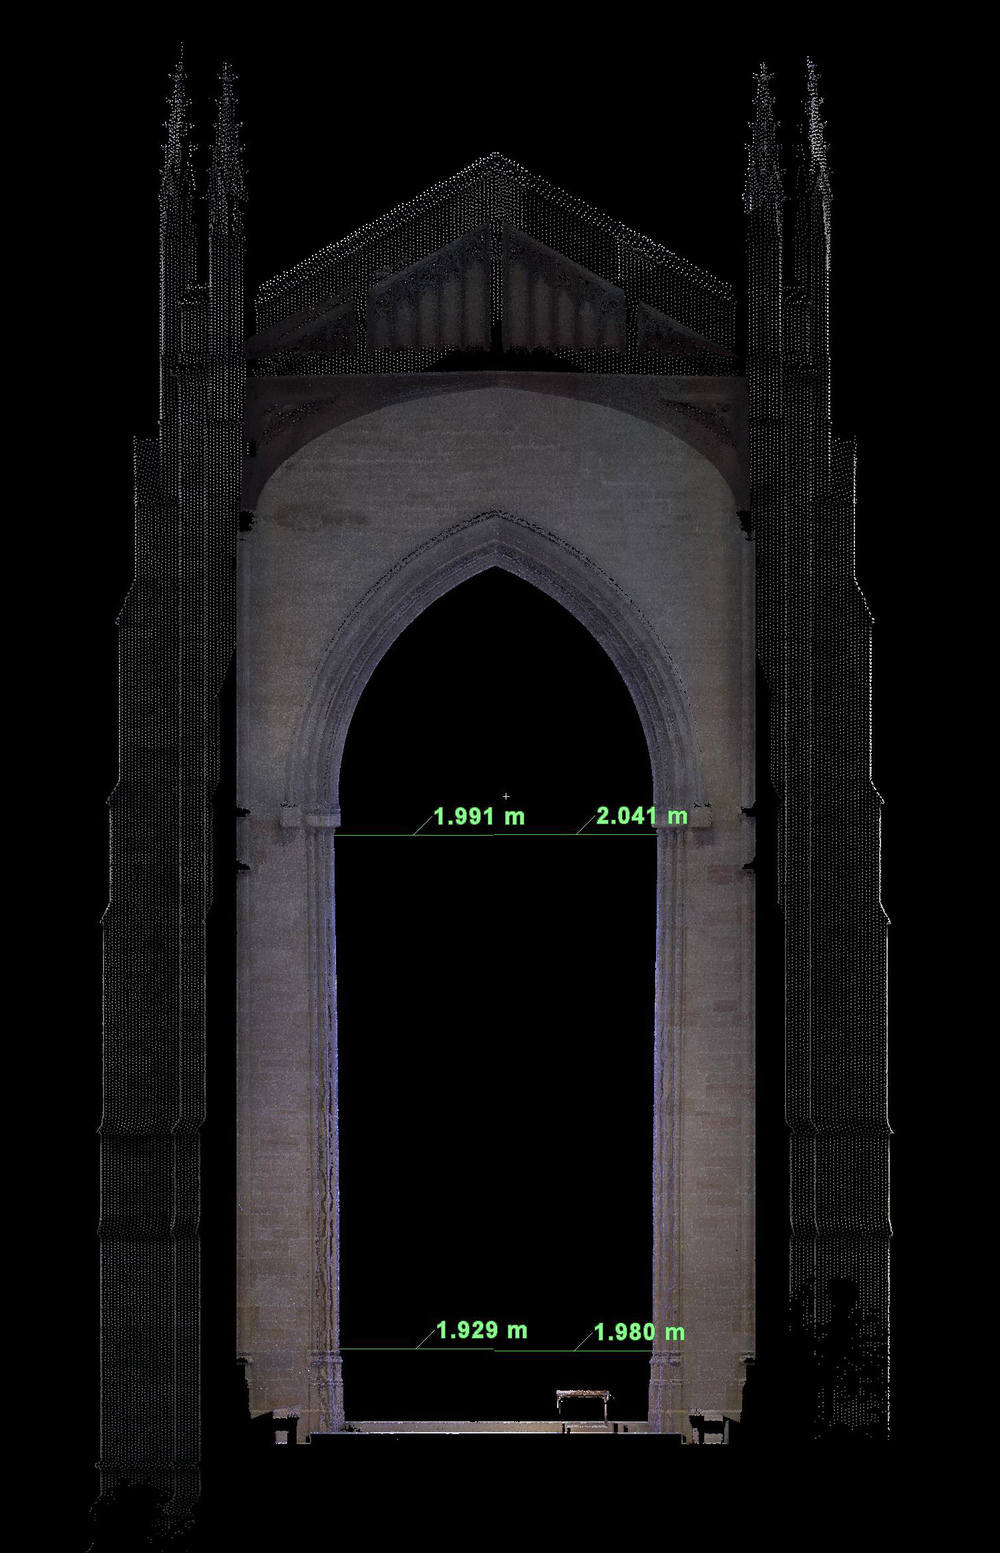 Figure 16: Bryn Athyn, Cathedral of the New Jerusalem, laser scan: section through the sanctuary arch.